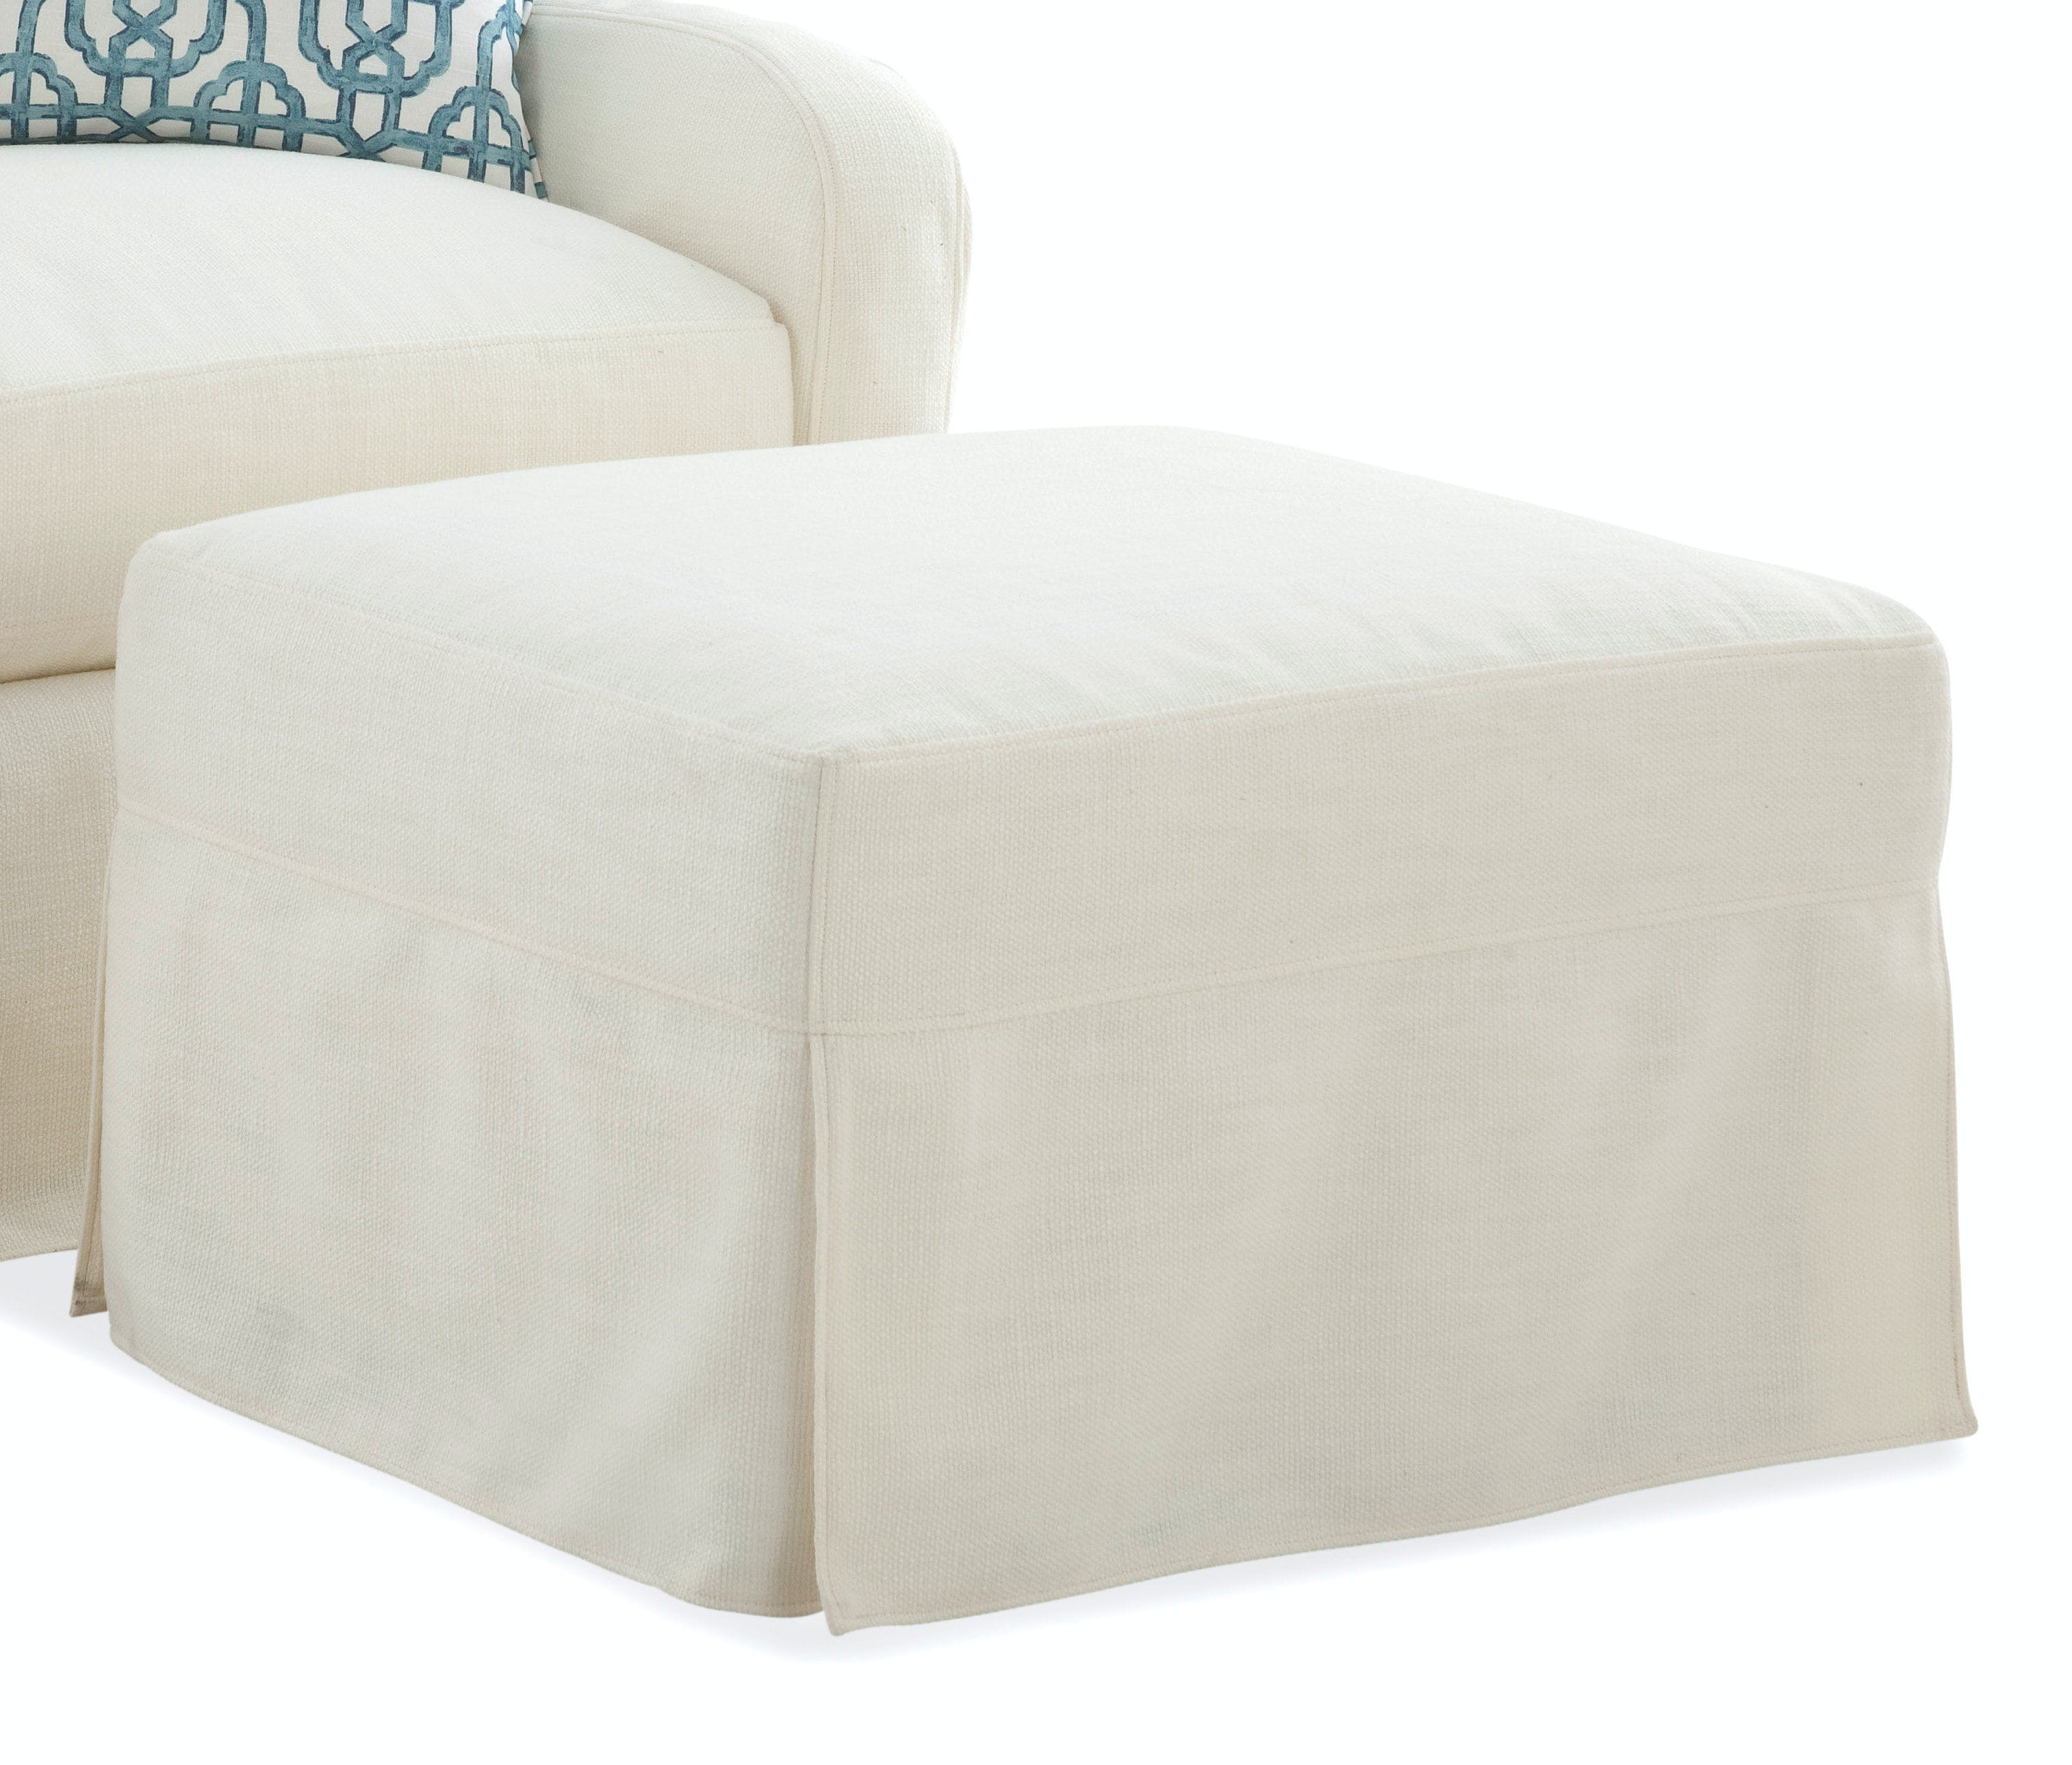 Braxton Culler Living Room Halsey Slipcovered Chair And